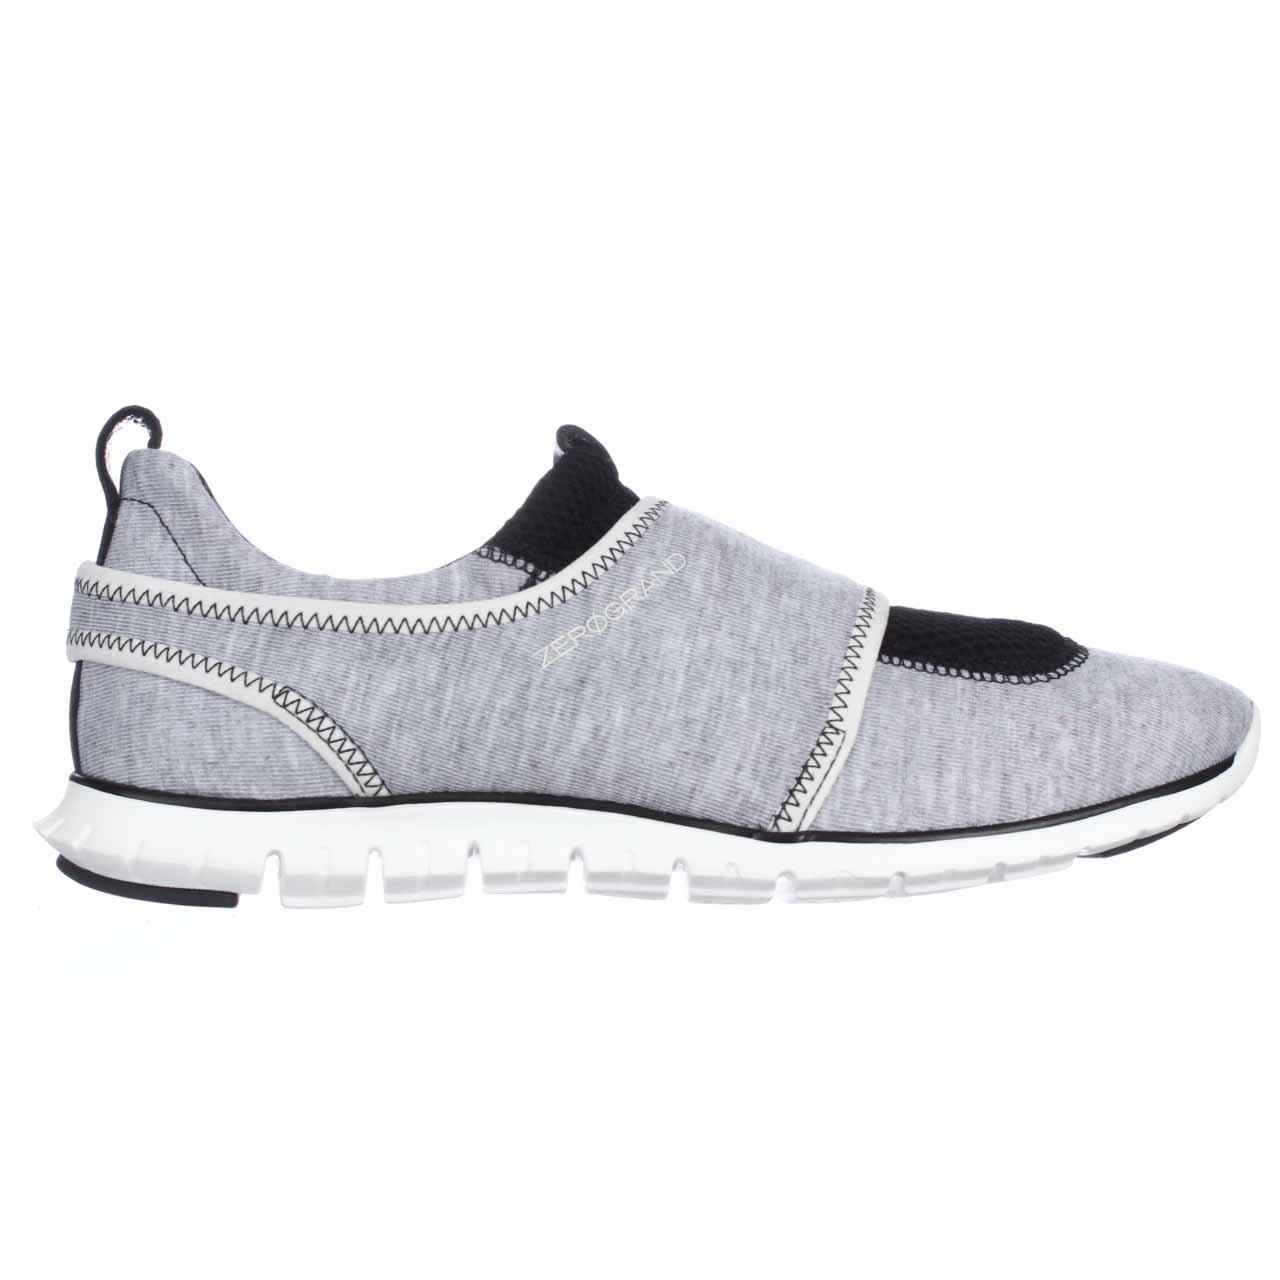 Cole Haan Women S Slip On Fashion Sneaker